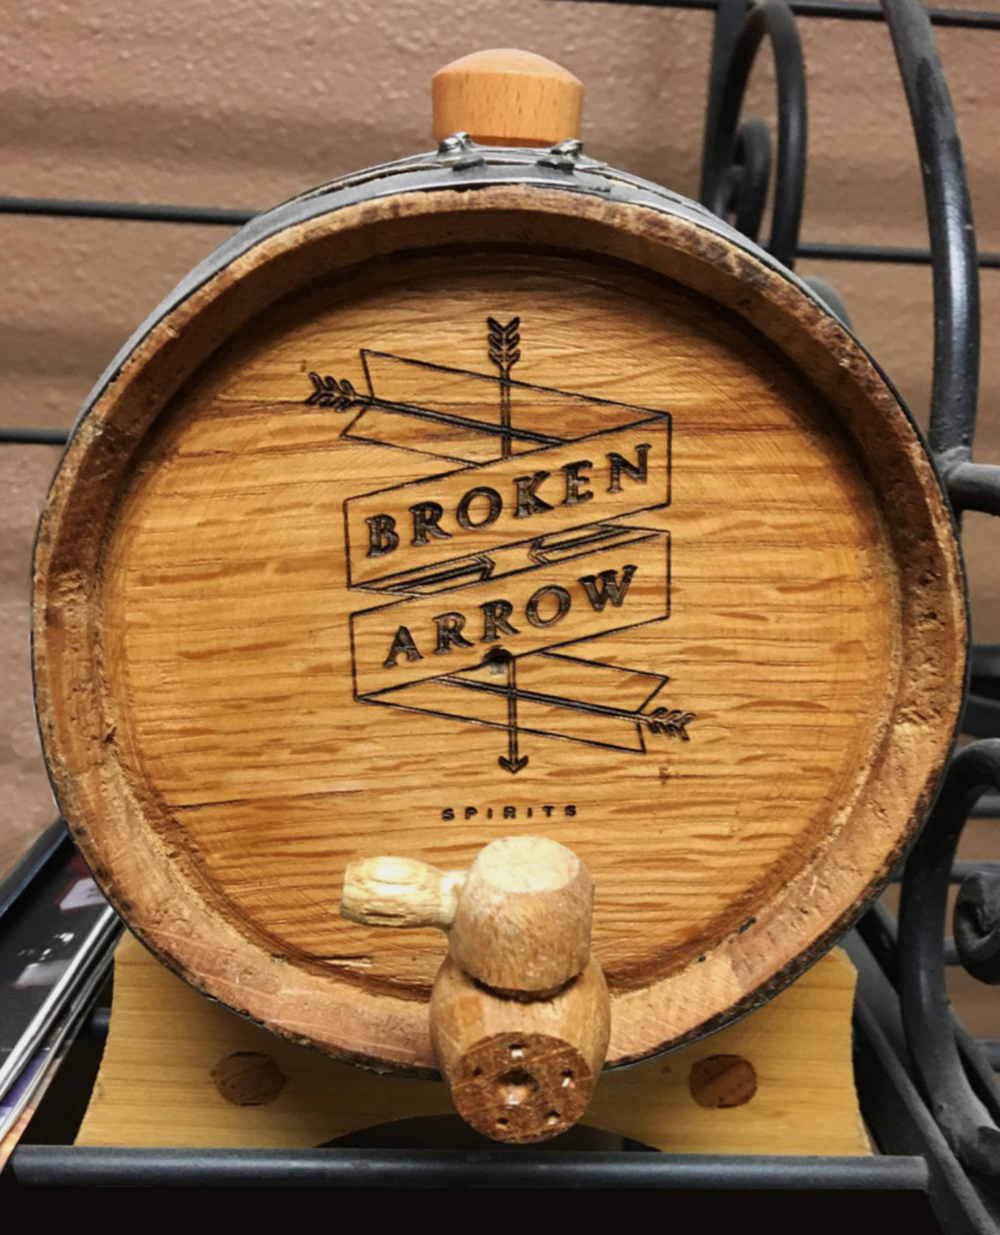 Broken Arrow Spirits